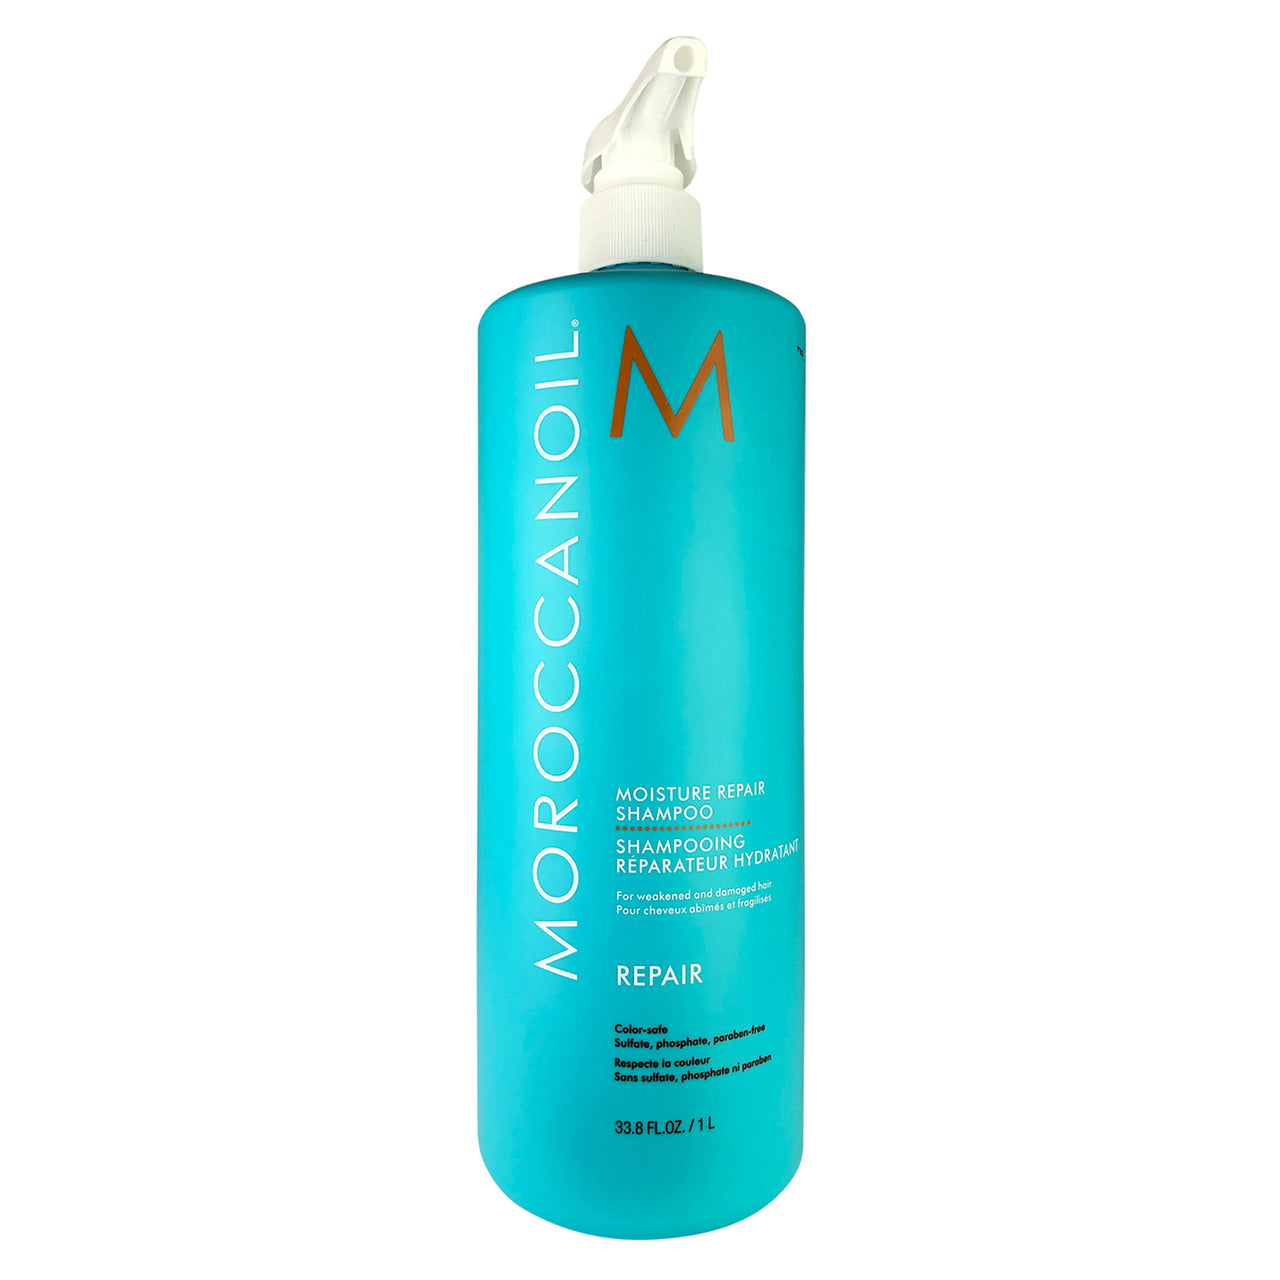 MOROCCANOIL Moisture Repair Liter 33.8 oz For Weakened and Damaged Hair Color-Safe Parabens Sulfate & Phosphate Free